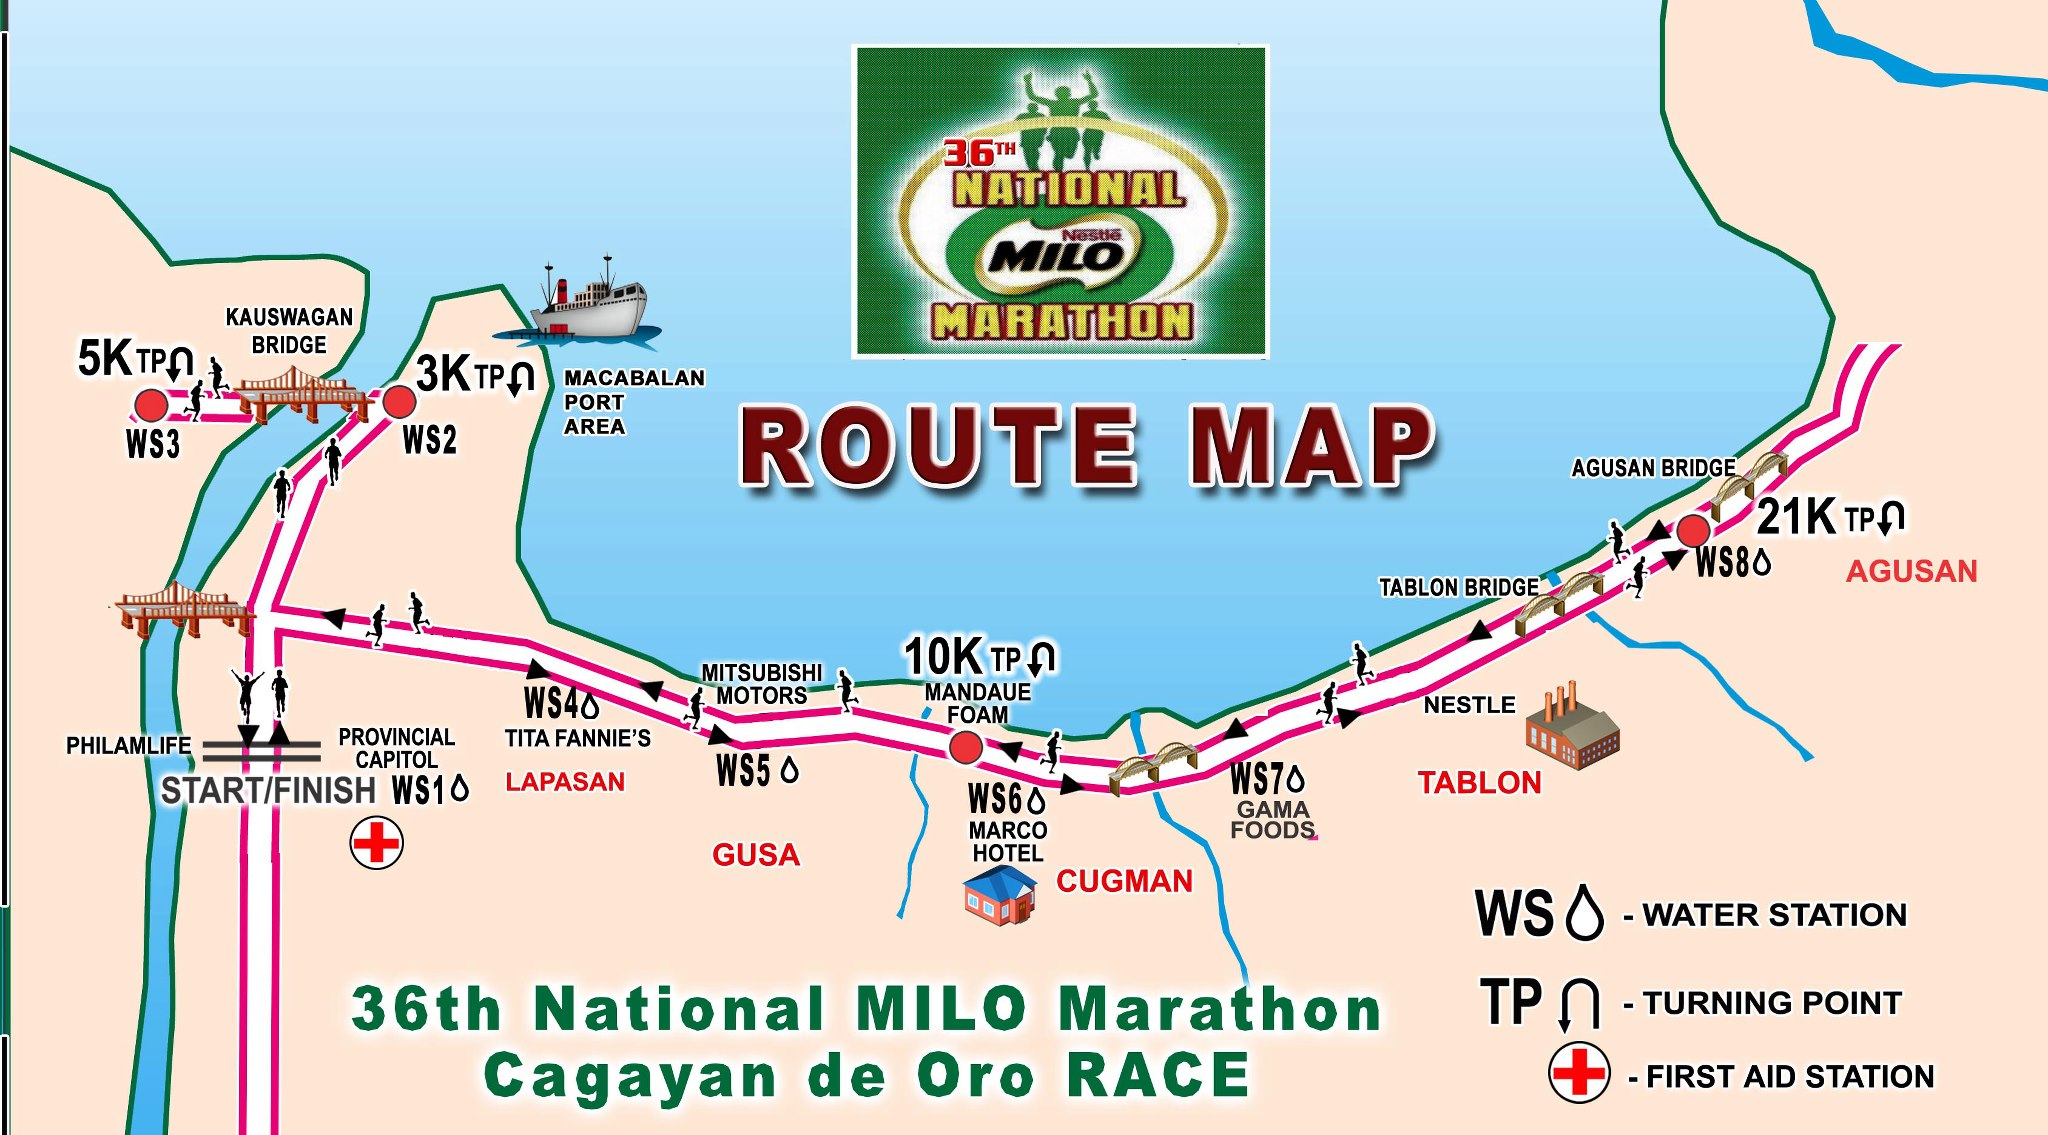 36th National MILO Marathon 2012 Cagayan de oro